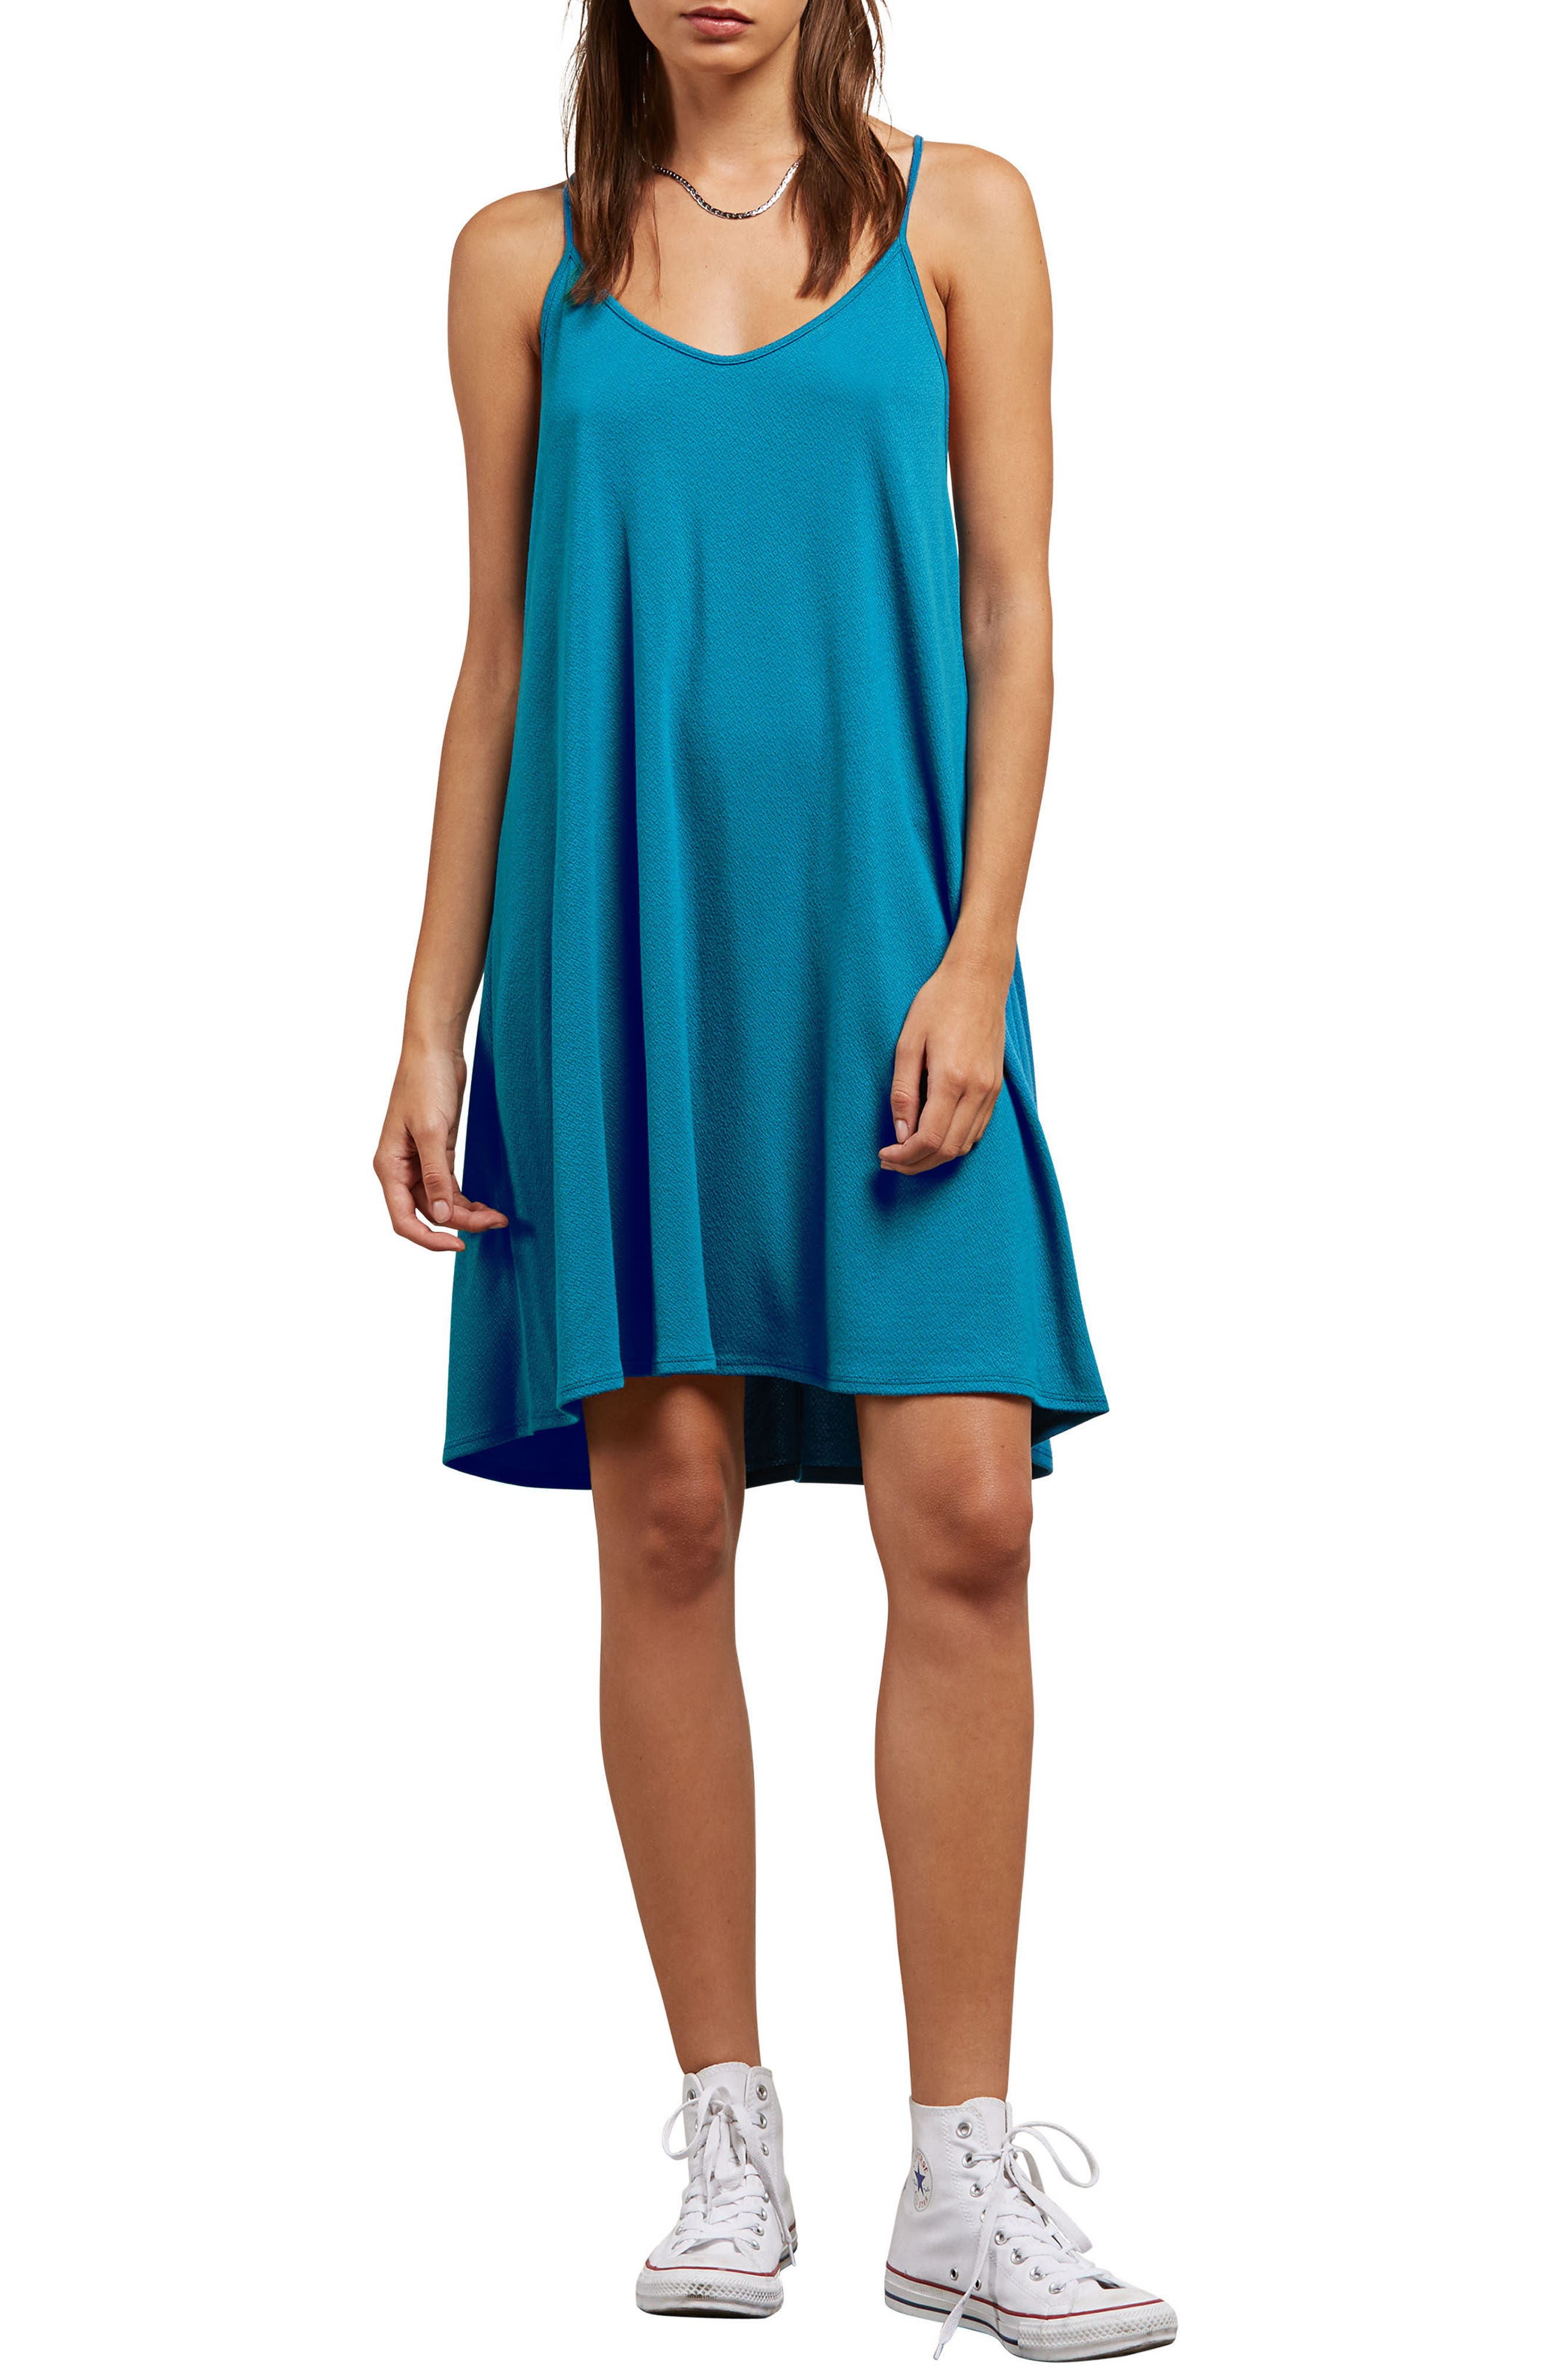 Dessert Vibes Dress,                             Main thumbnail 1, color,                             Sea Blue